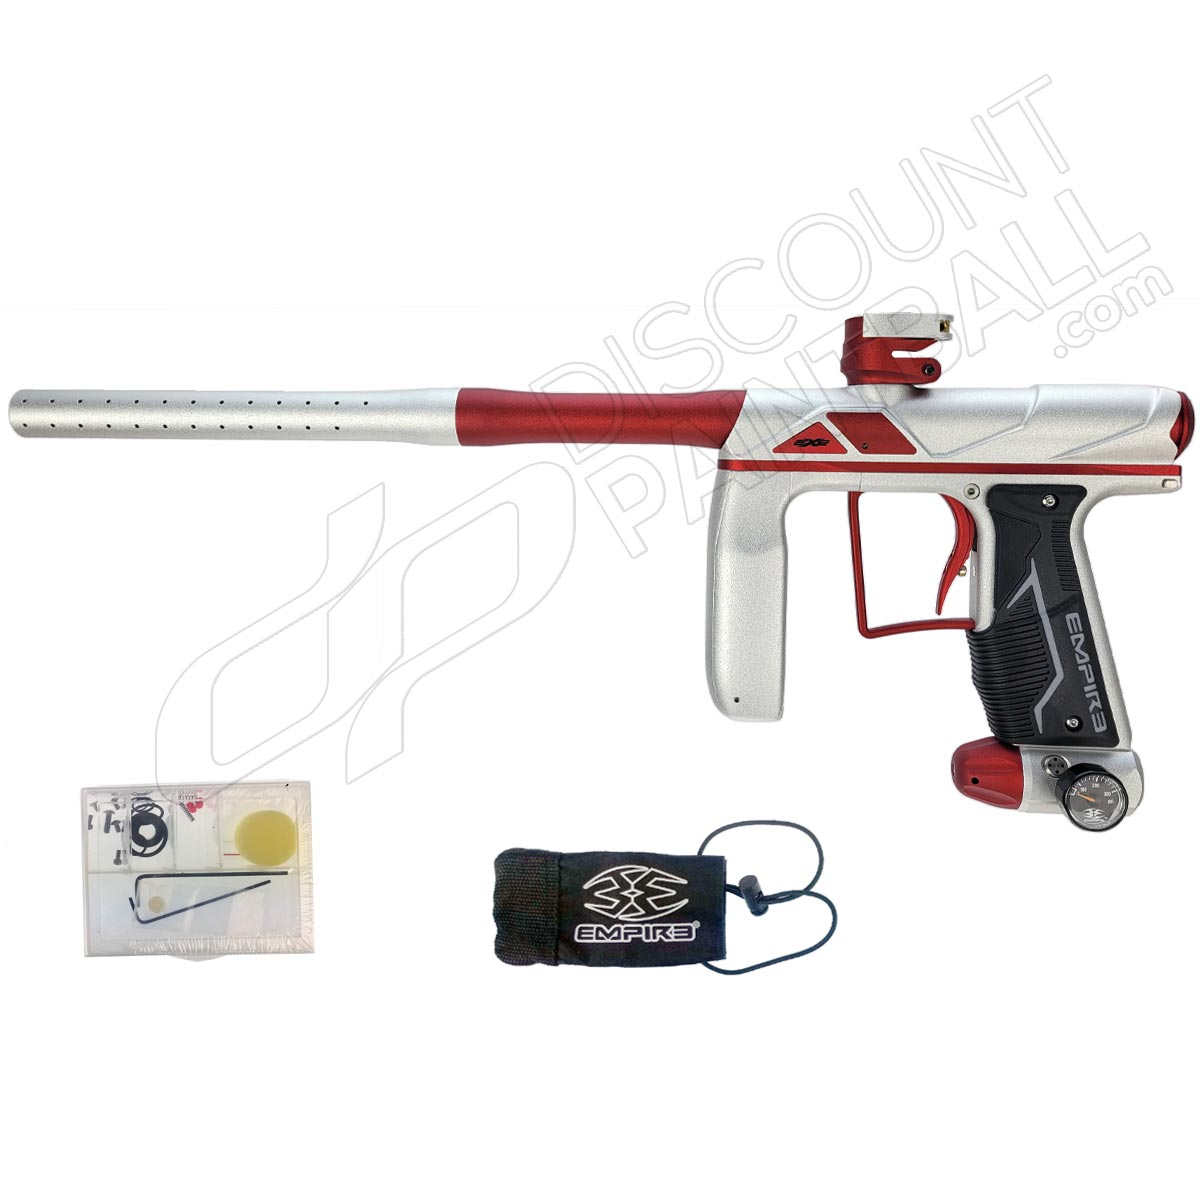 Empire Axe Pro Paintball Gun Dust Silver/Red